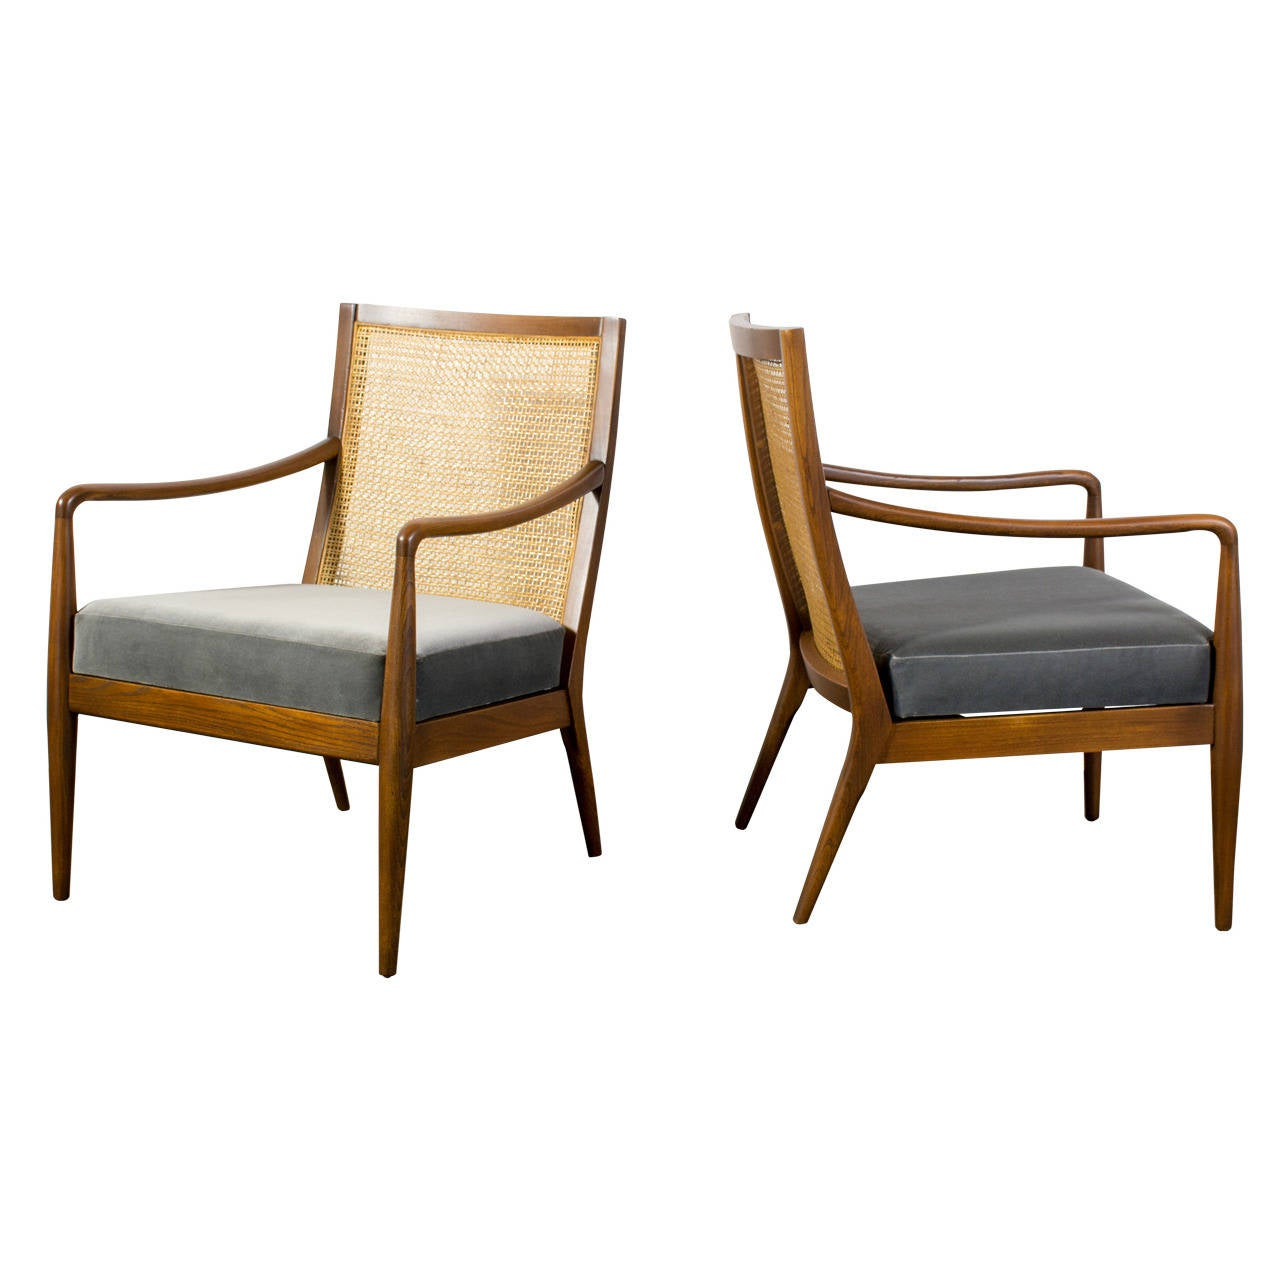 Pair Of Vintage Mid Century Chairs By Richardson Nemschoff At 1stdibs